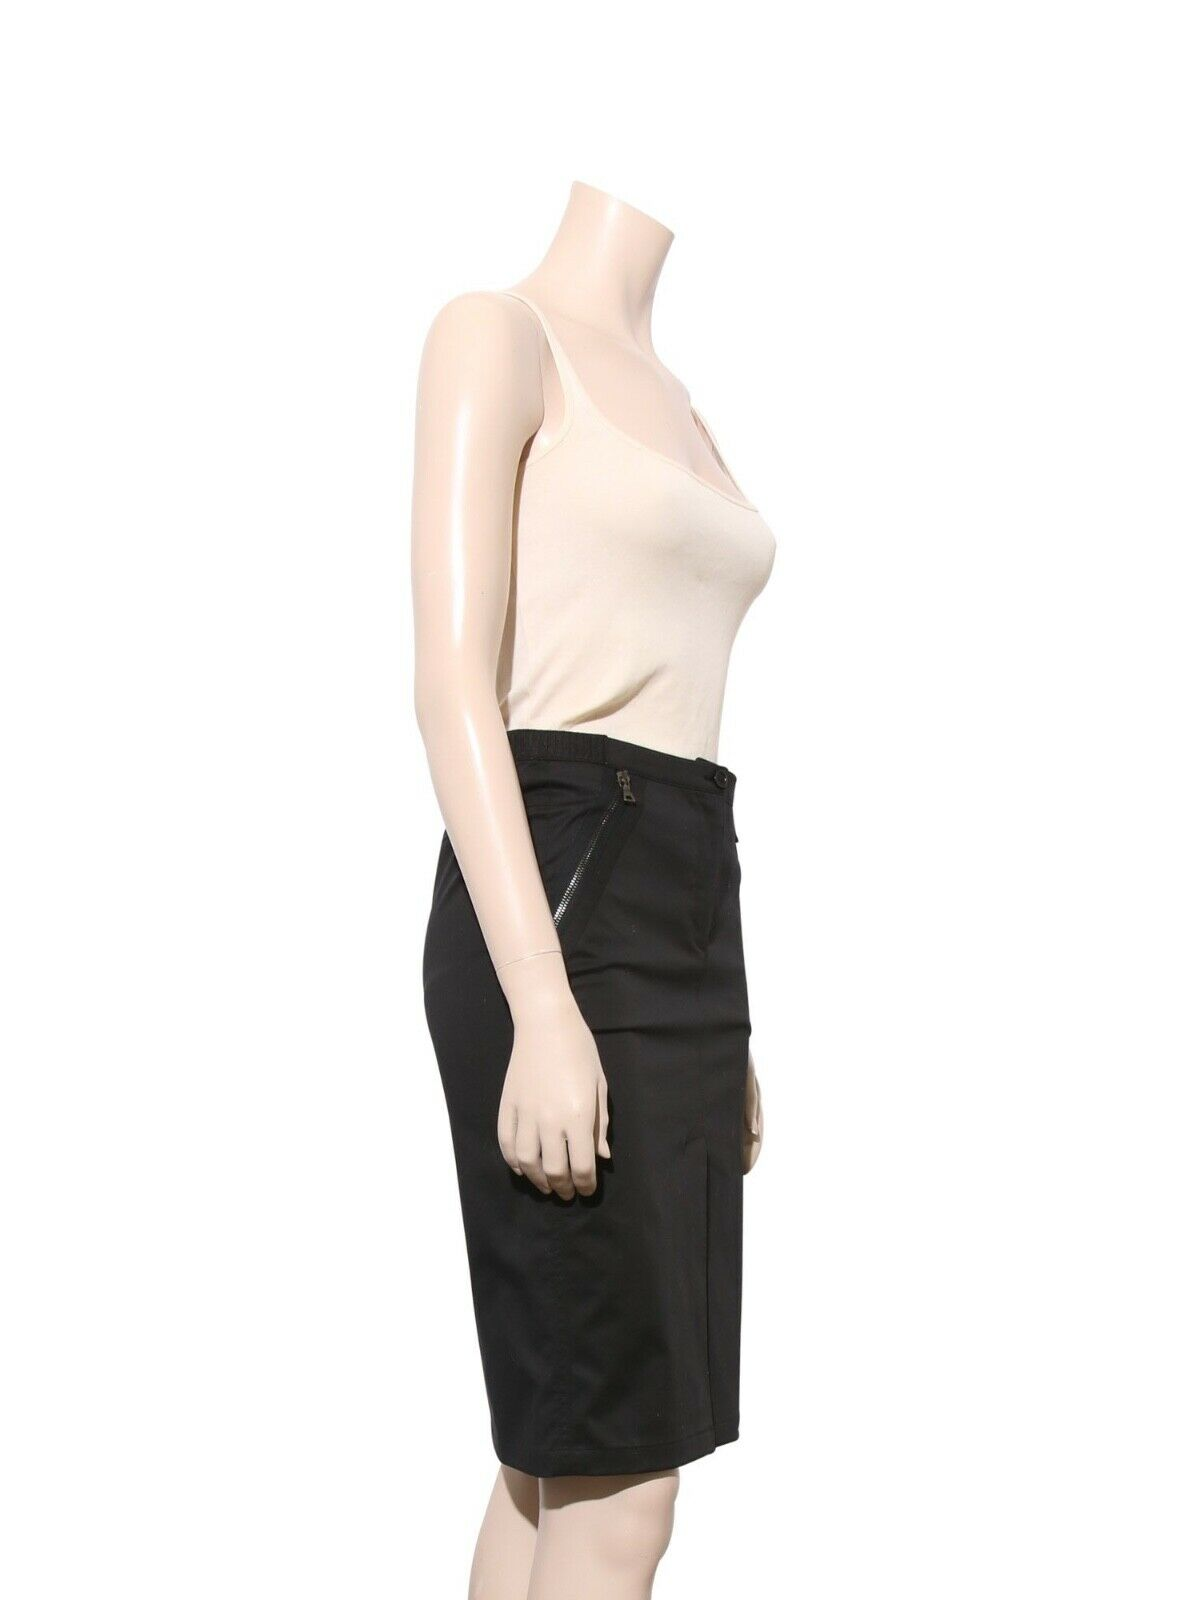 PRADA Cotton Pencil Skirt (Size 38) - image 2